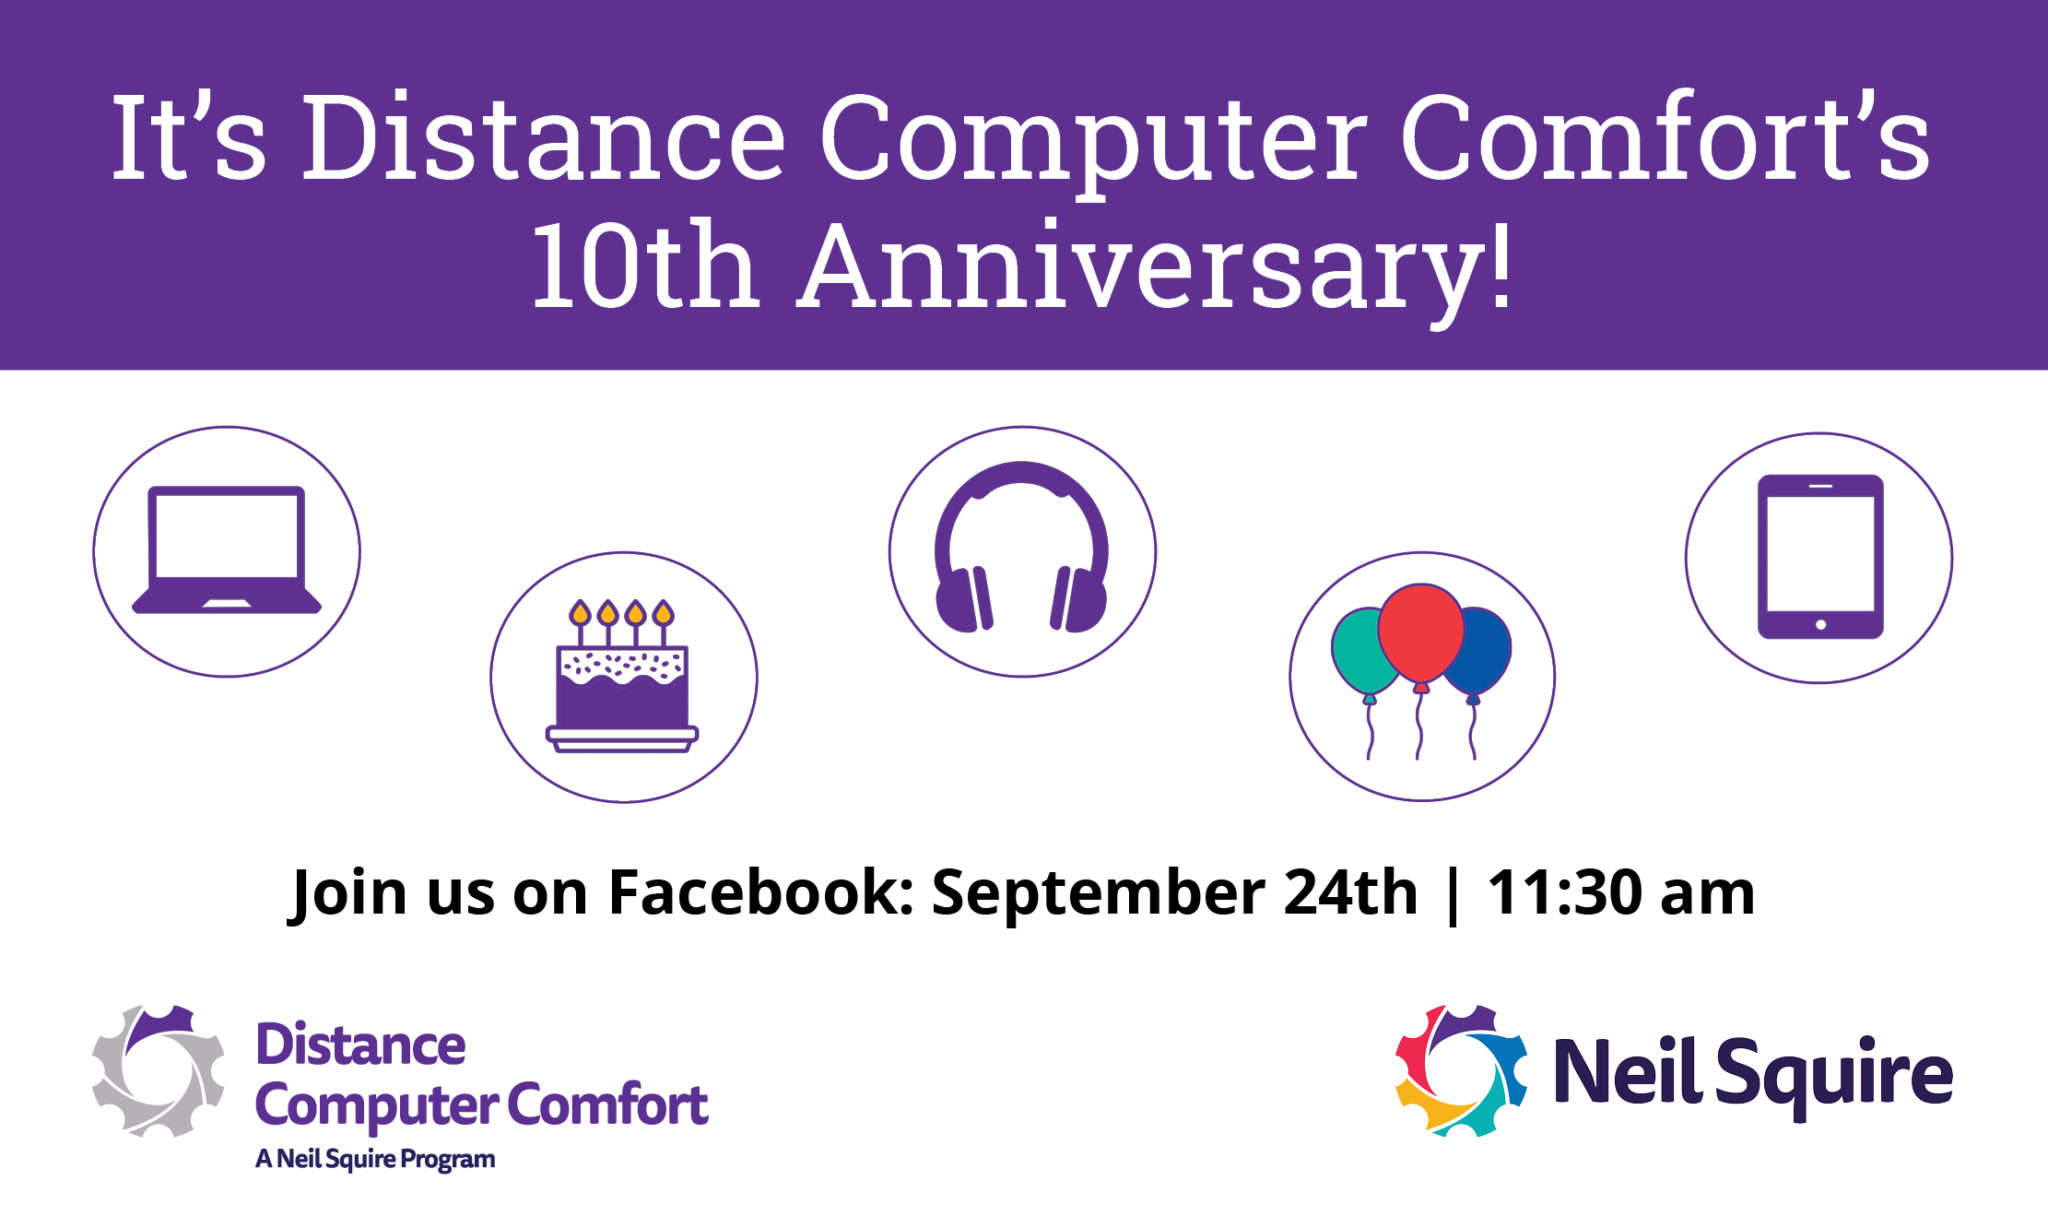 Icons of computer, laptop, phone, cake and balloons. Date and time. Distance Computer Comfort and Neil Squire logos